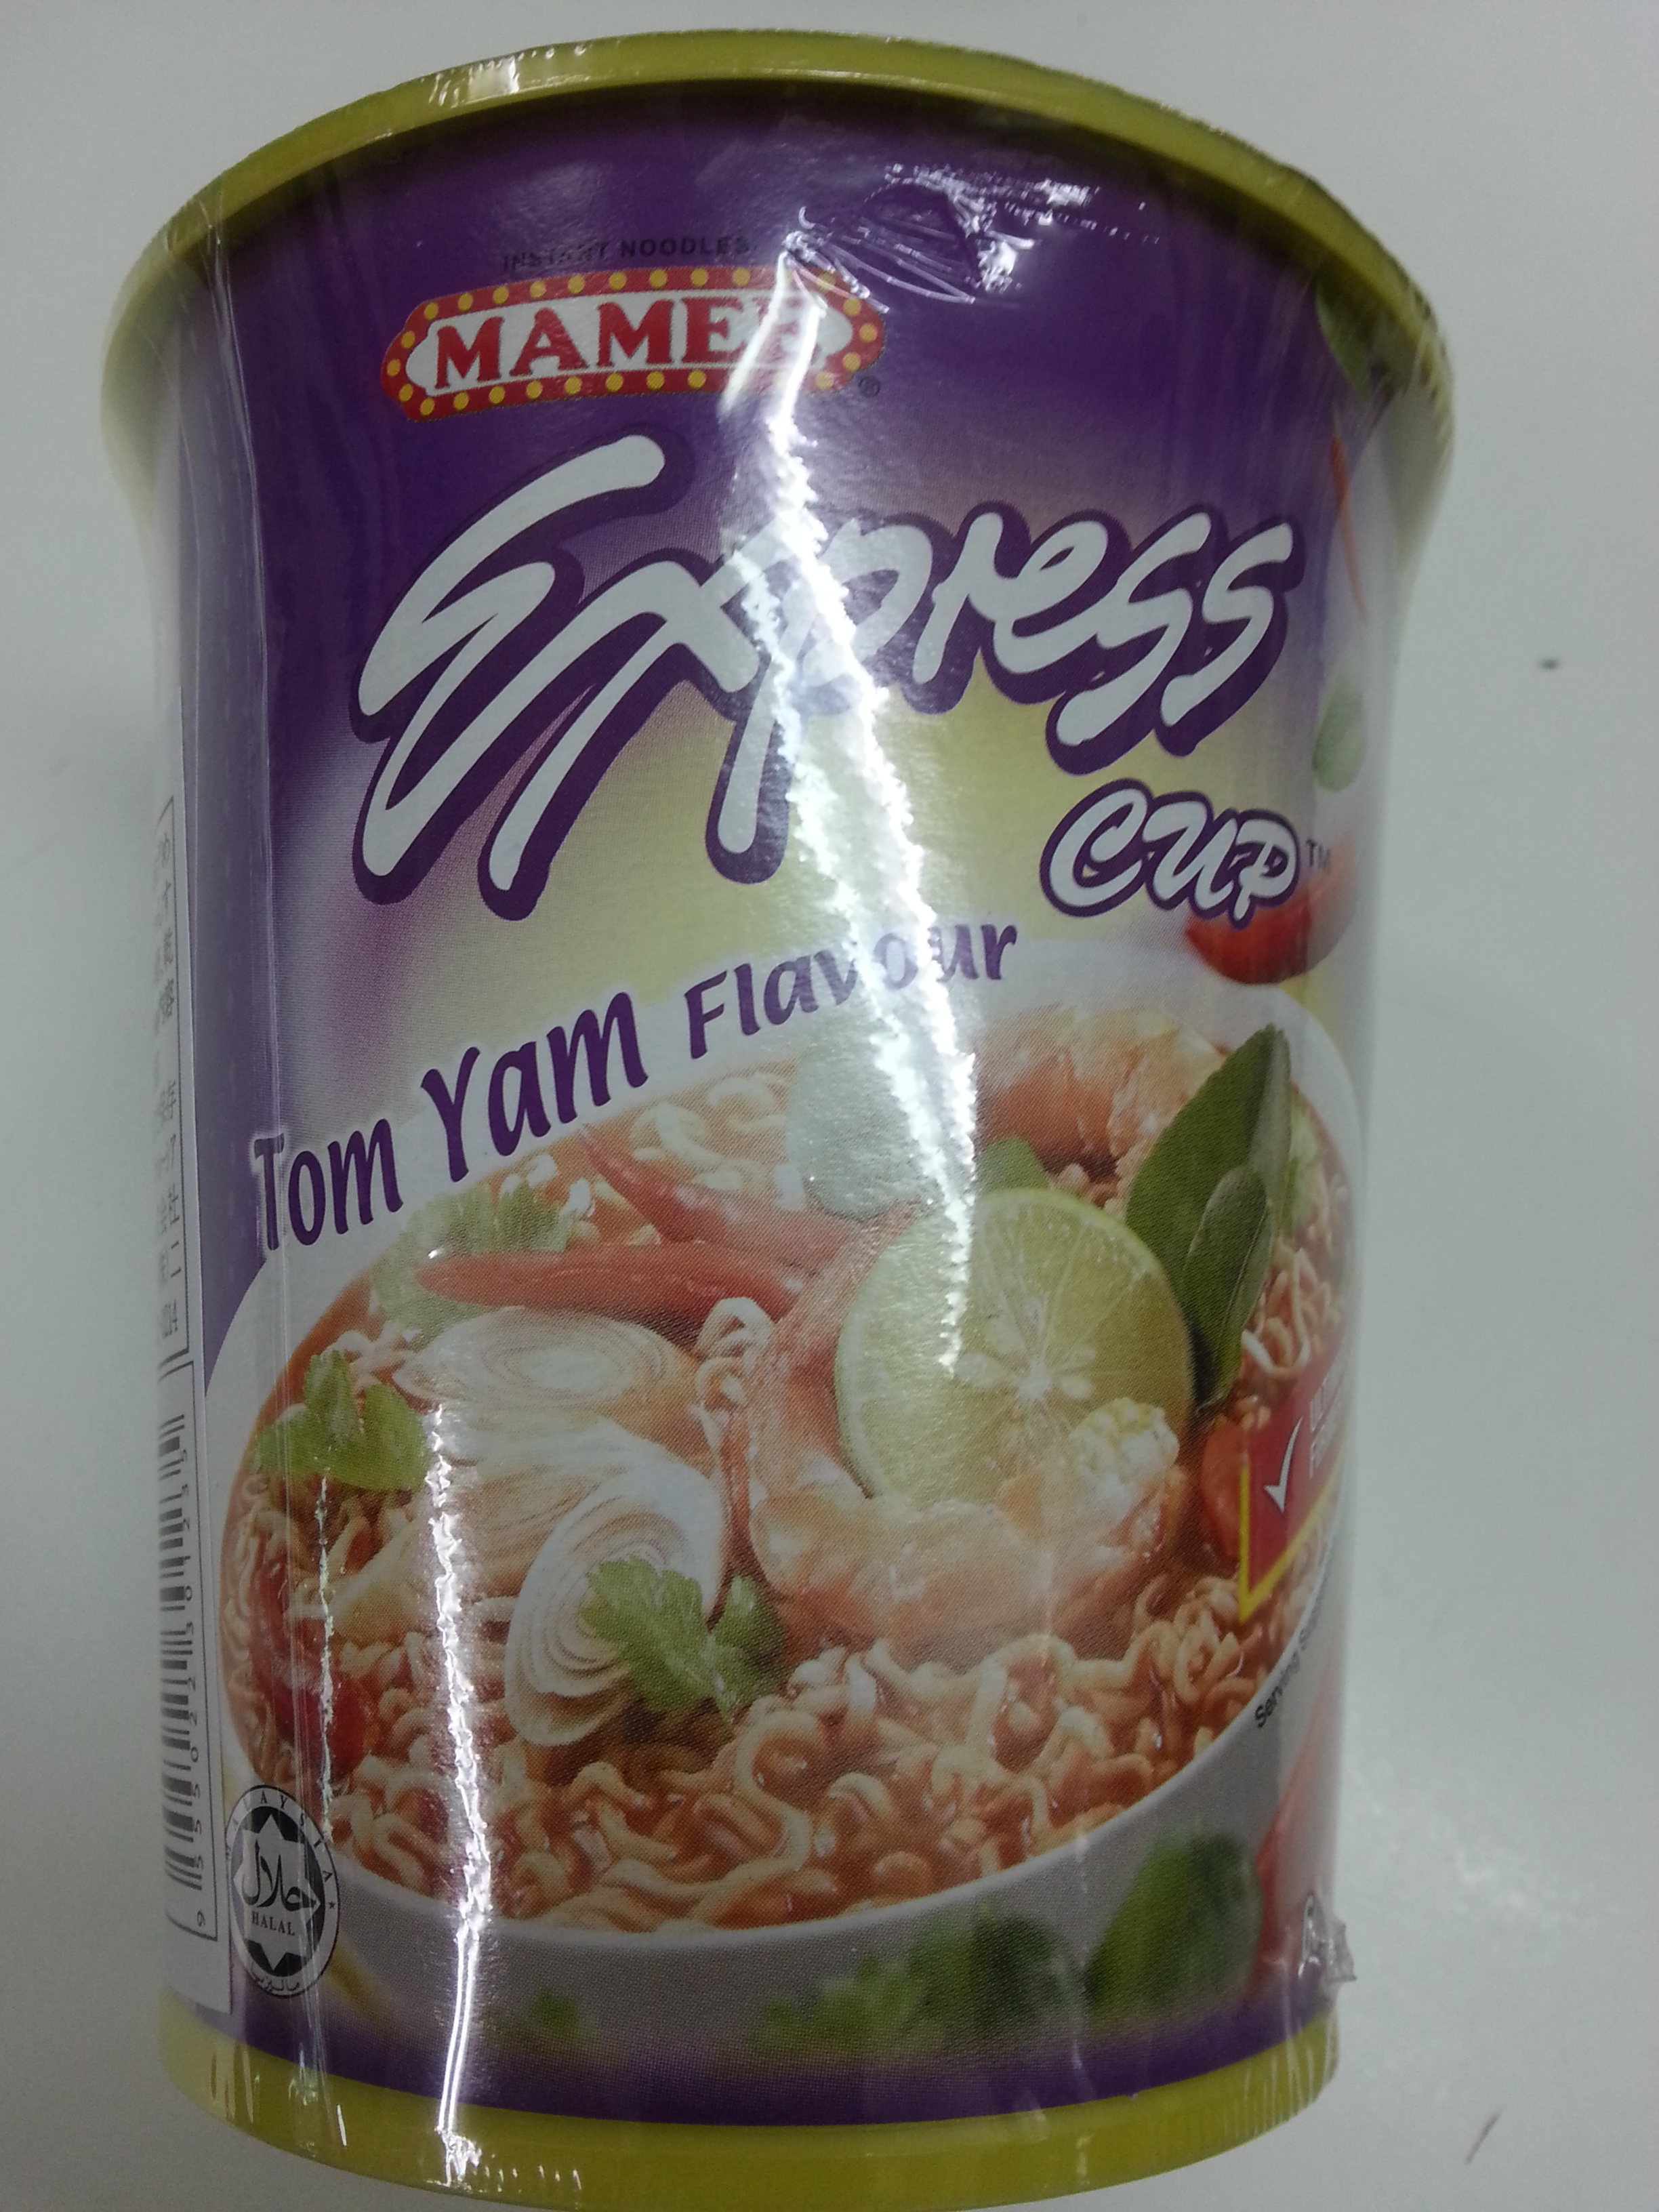 Tom Yam Flavour (Cup Noodle)